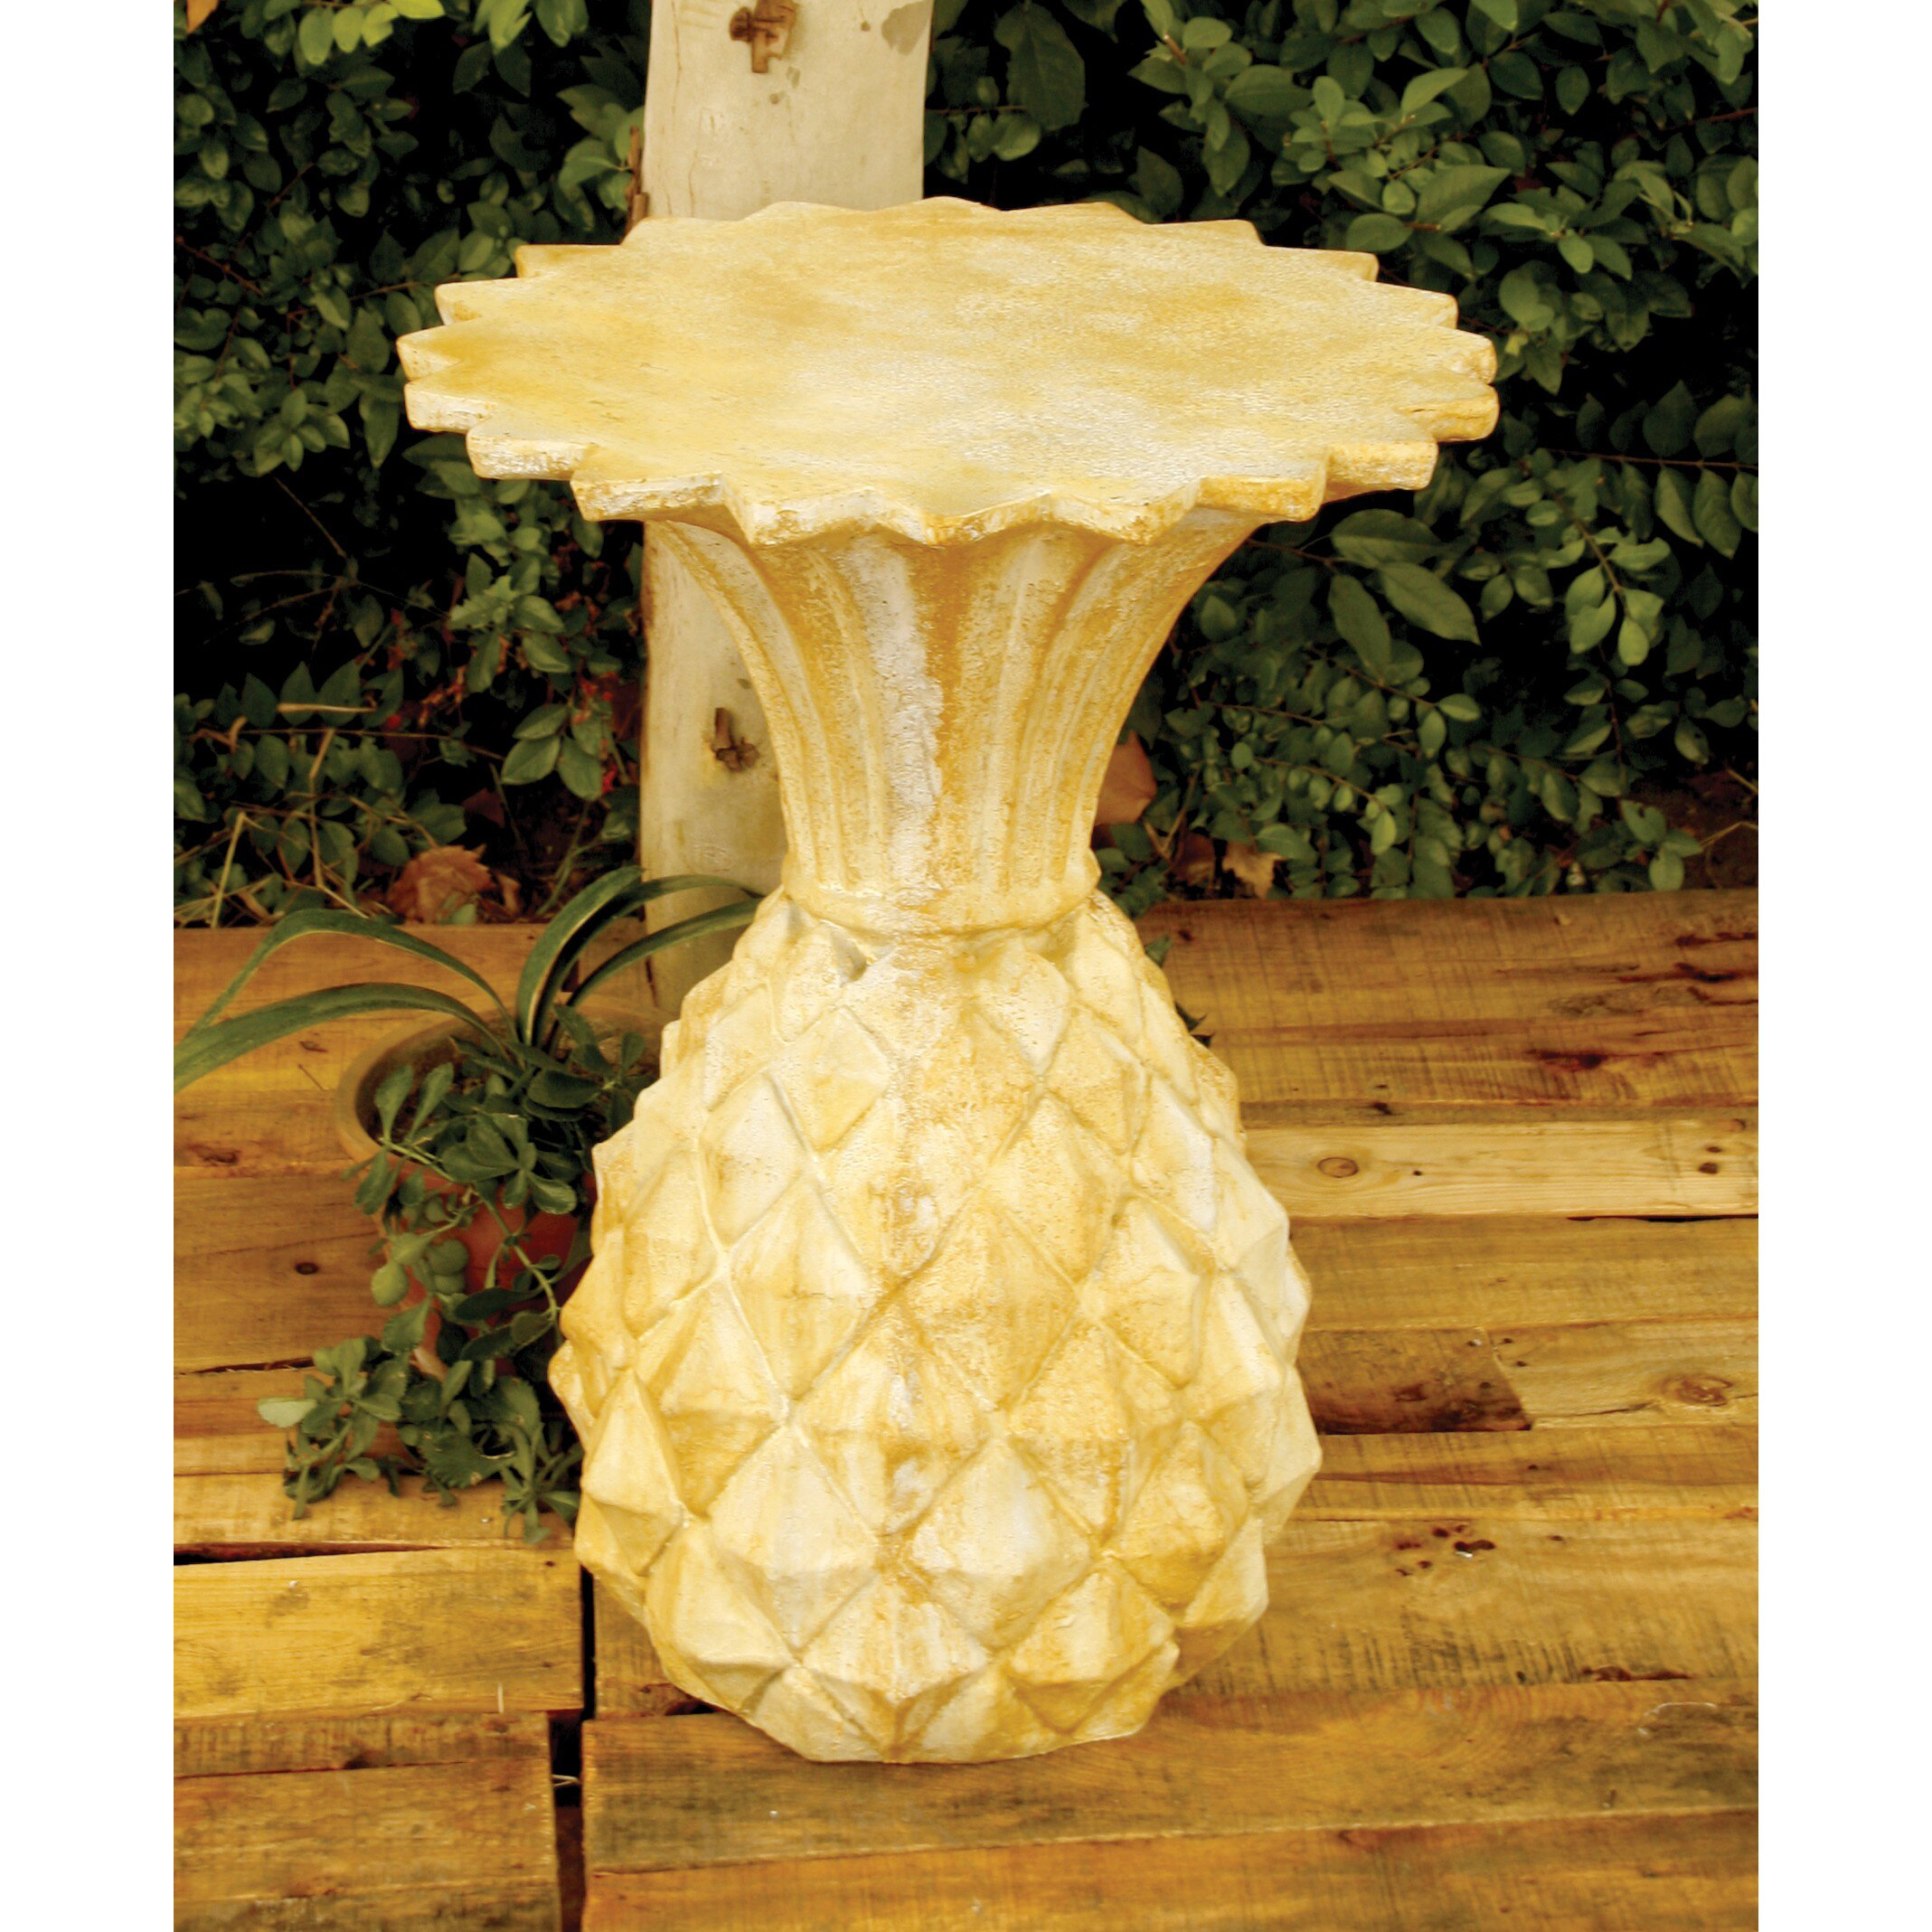 Orlandistatuary Pineapple Stand Outdoor Side Table